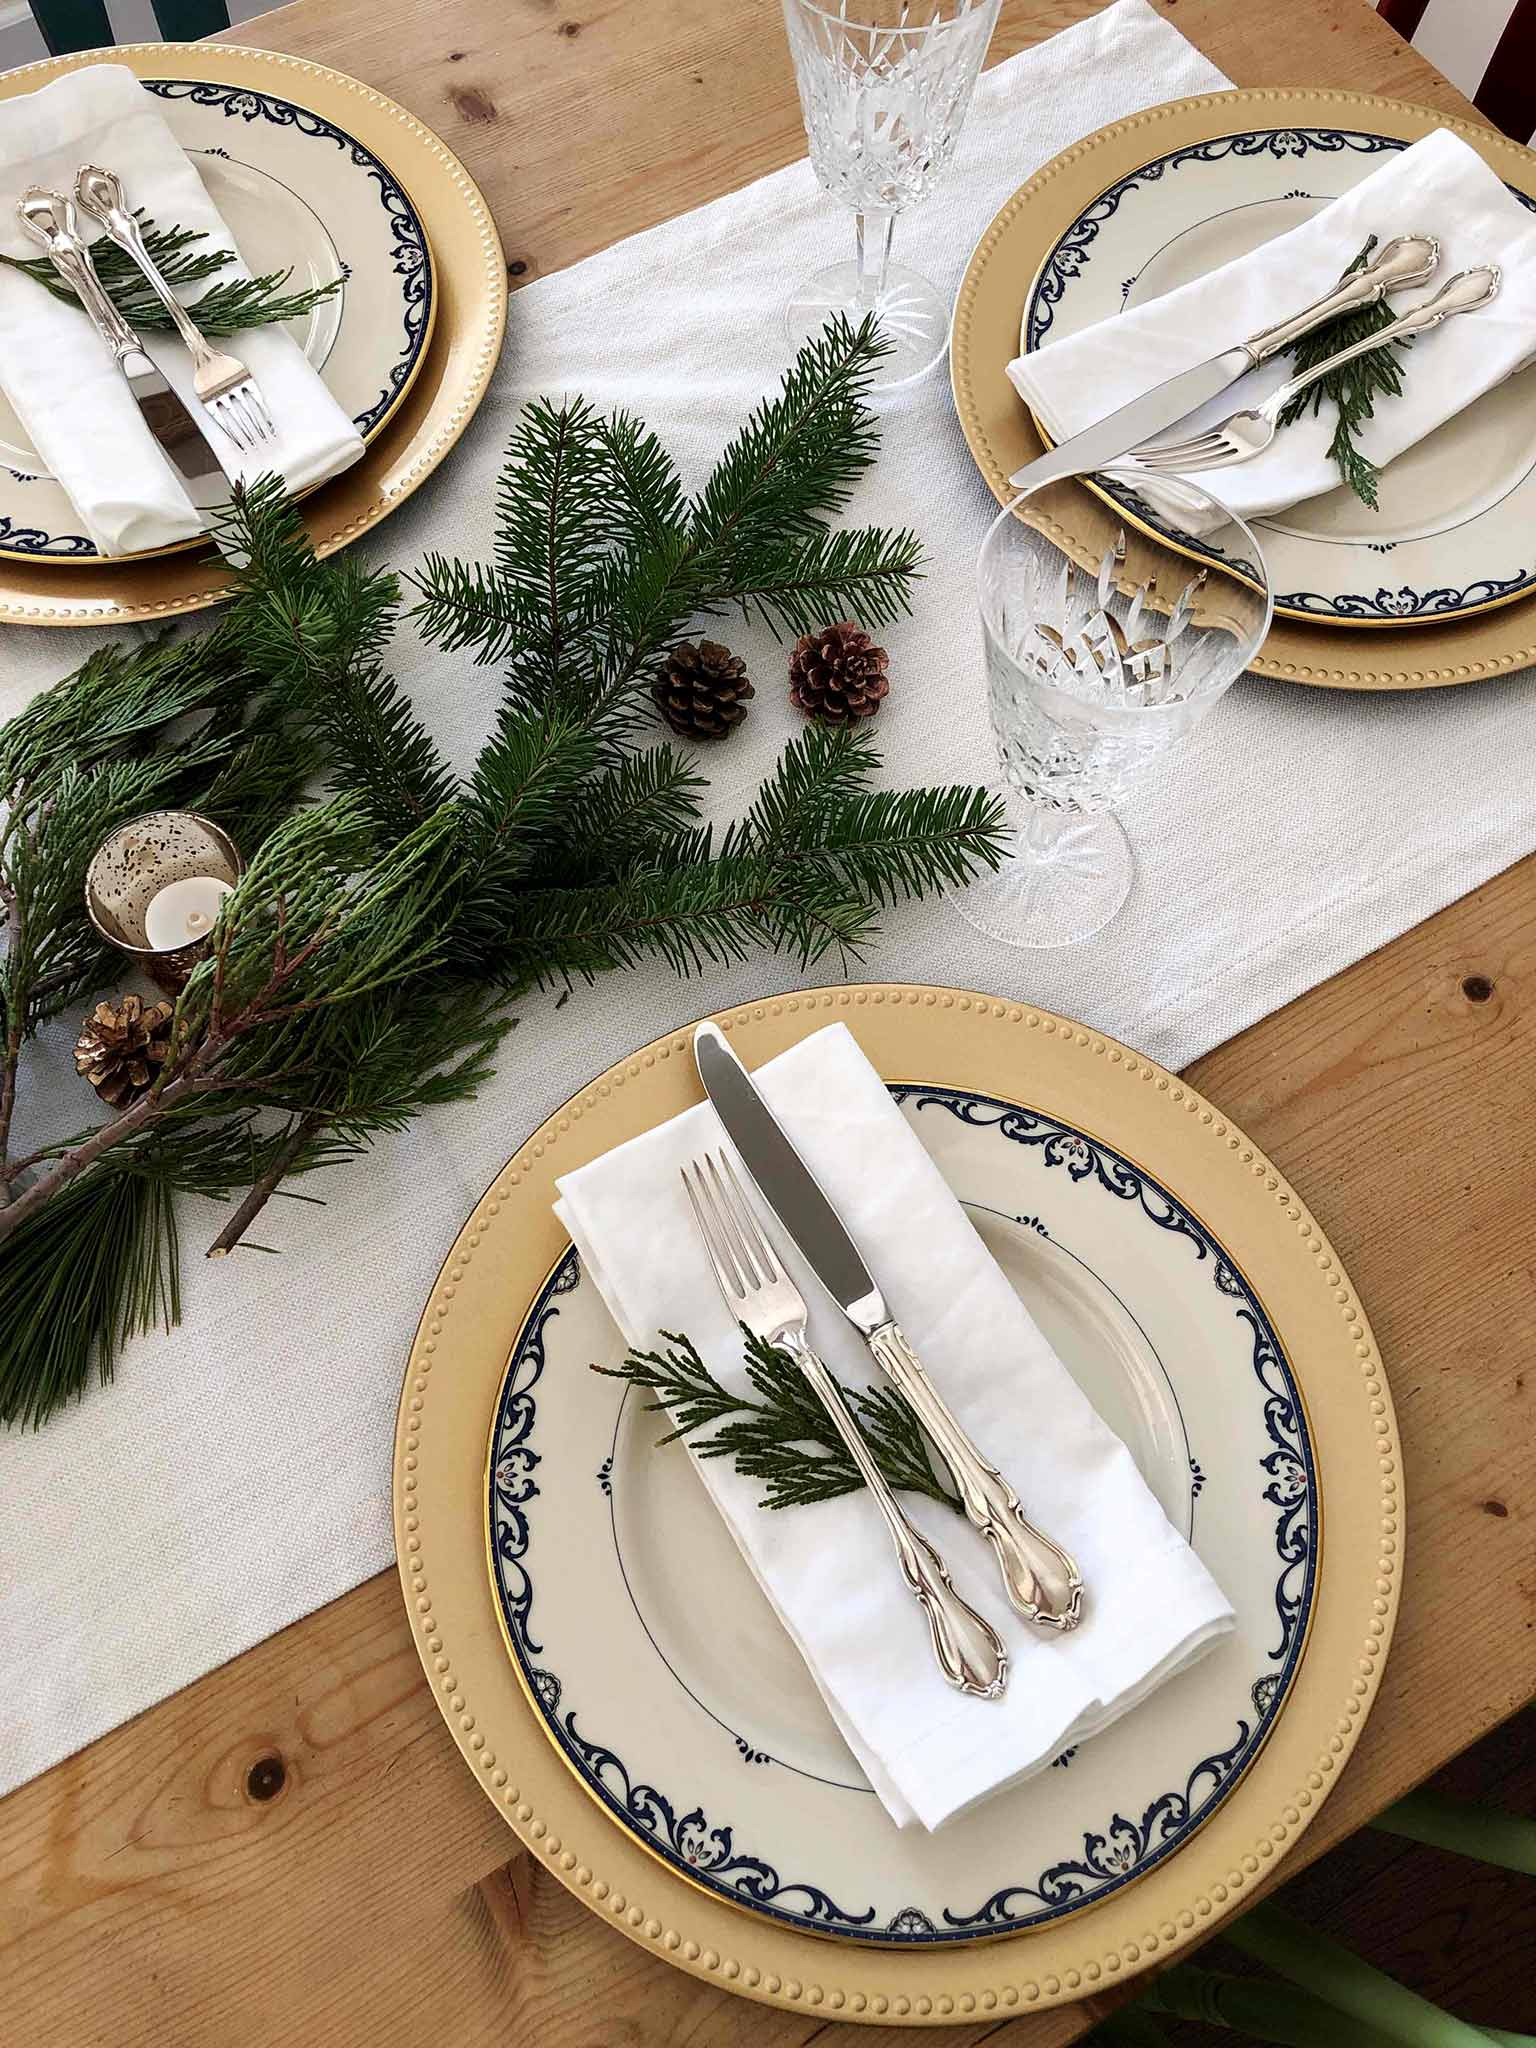 Tablescape details | How to Create a Beautiful Tablescape on a Budget | That Homebird Life Blog #christmasdecor #tablescape